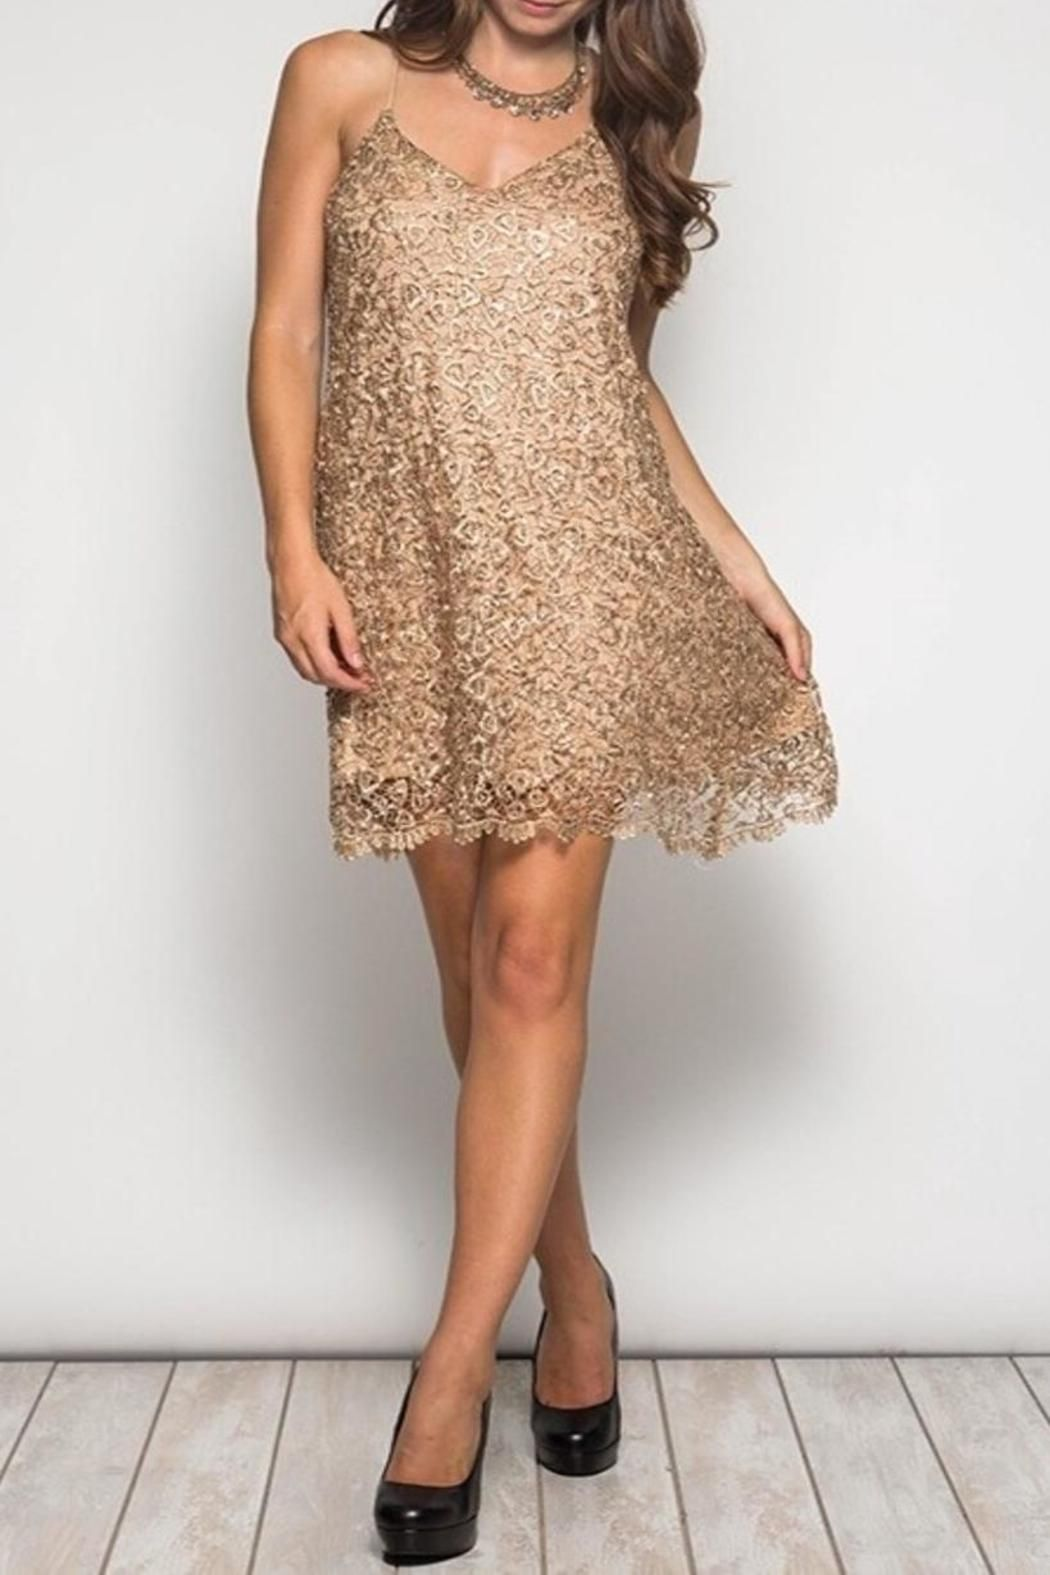 afb40cef Perfect dress for when you need to shine. Spaghetti strap sequin crochet  lace shift dress. Sparkle Shift Dress by She & Sky. Clothing - Dresses -  Night Out ...